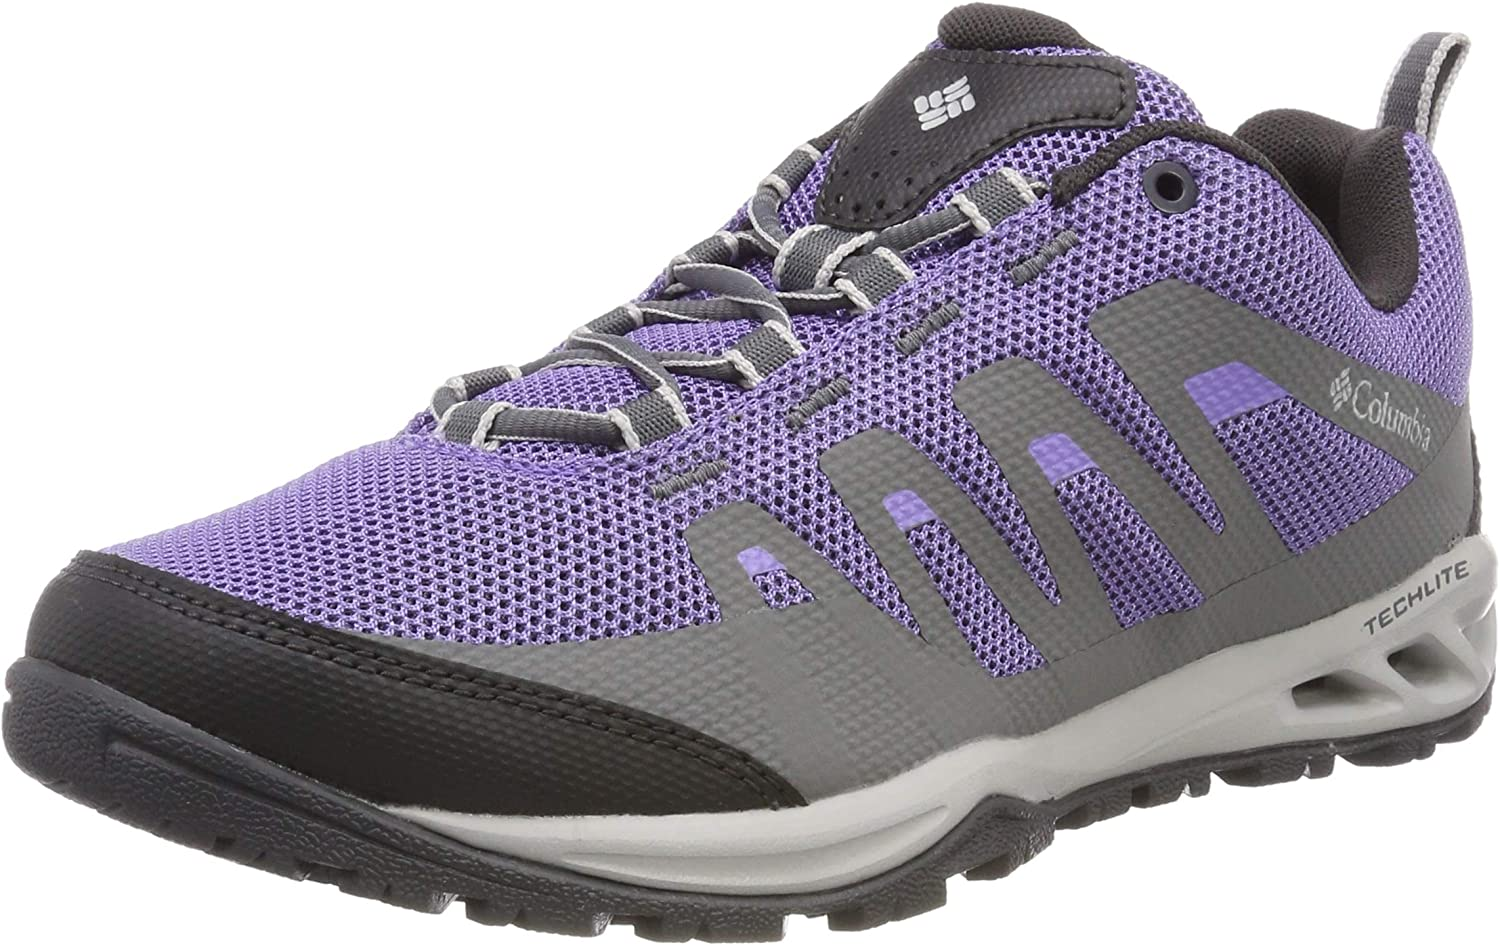 Columbia Women s Vapor Vent Hiking Shoe